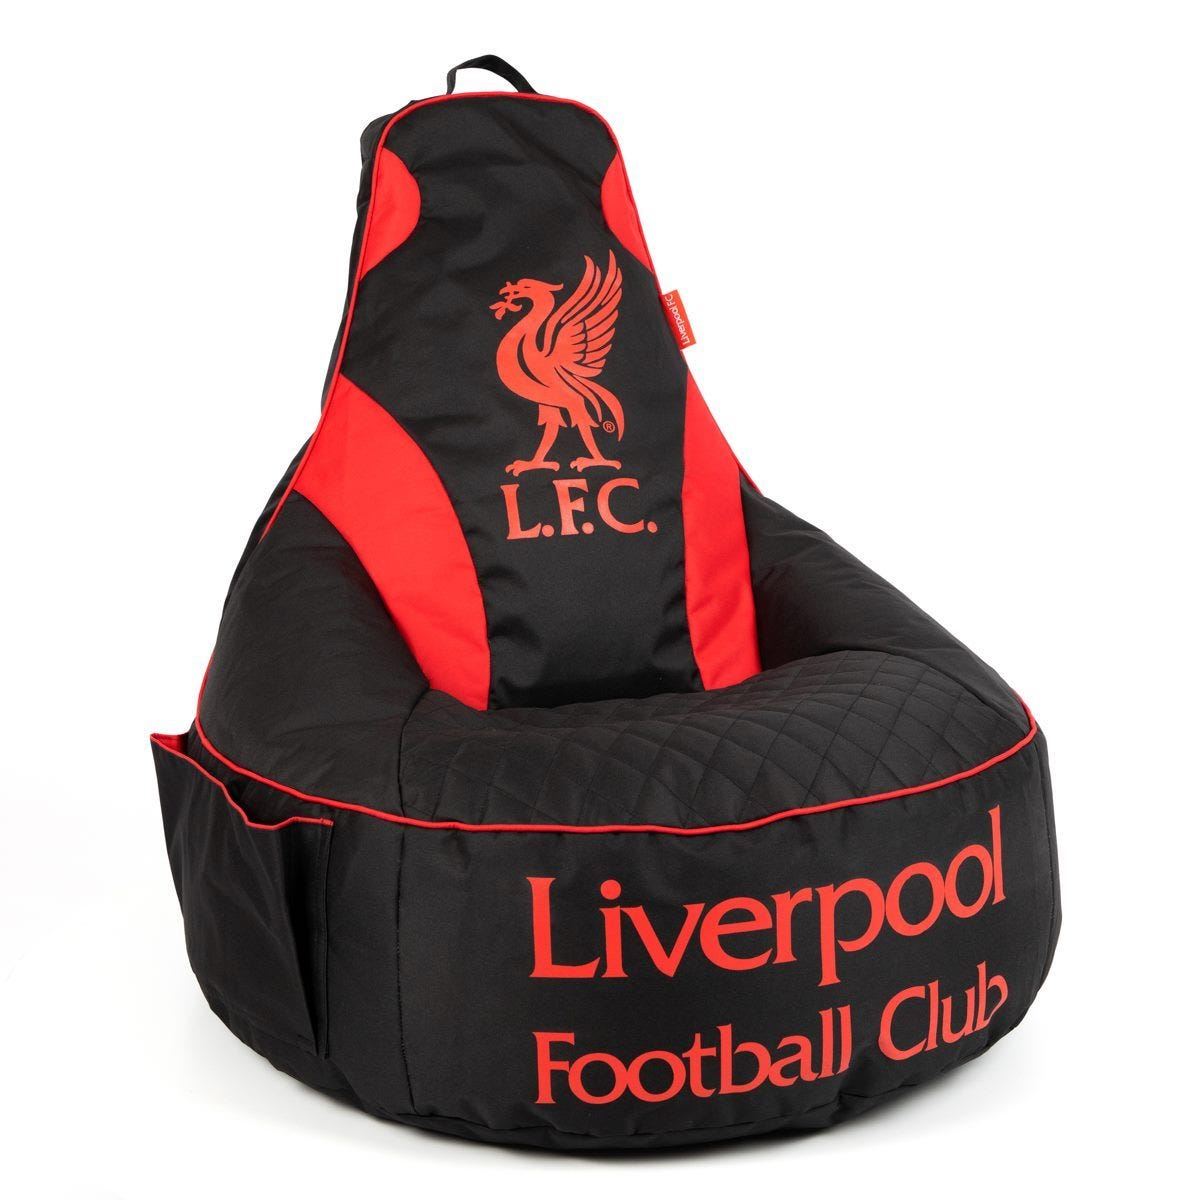 Province 5 Liverpool FC Big Chill Gaming Bean Bag Chair